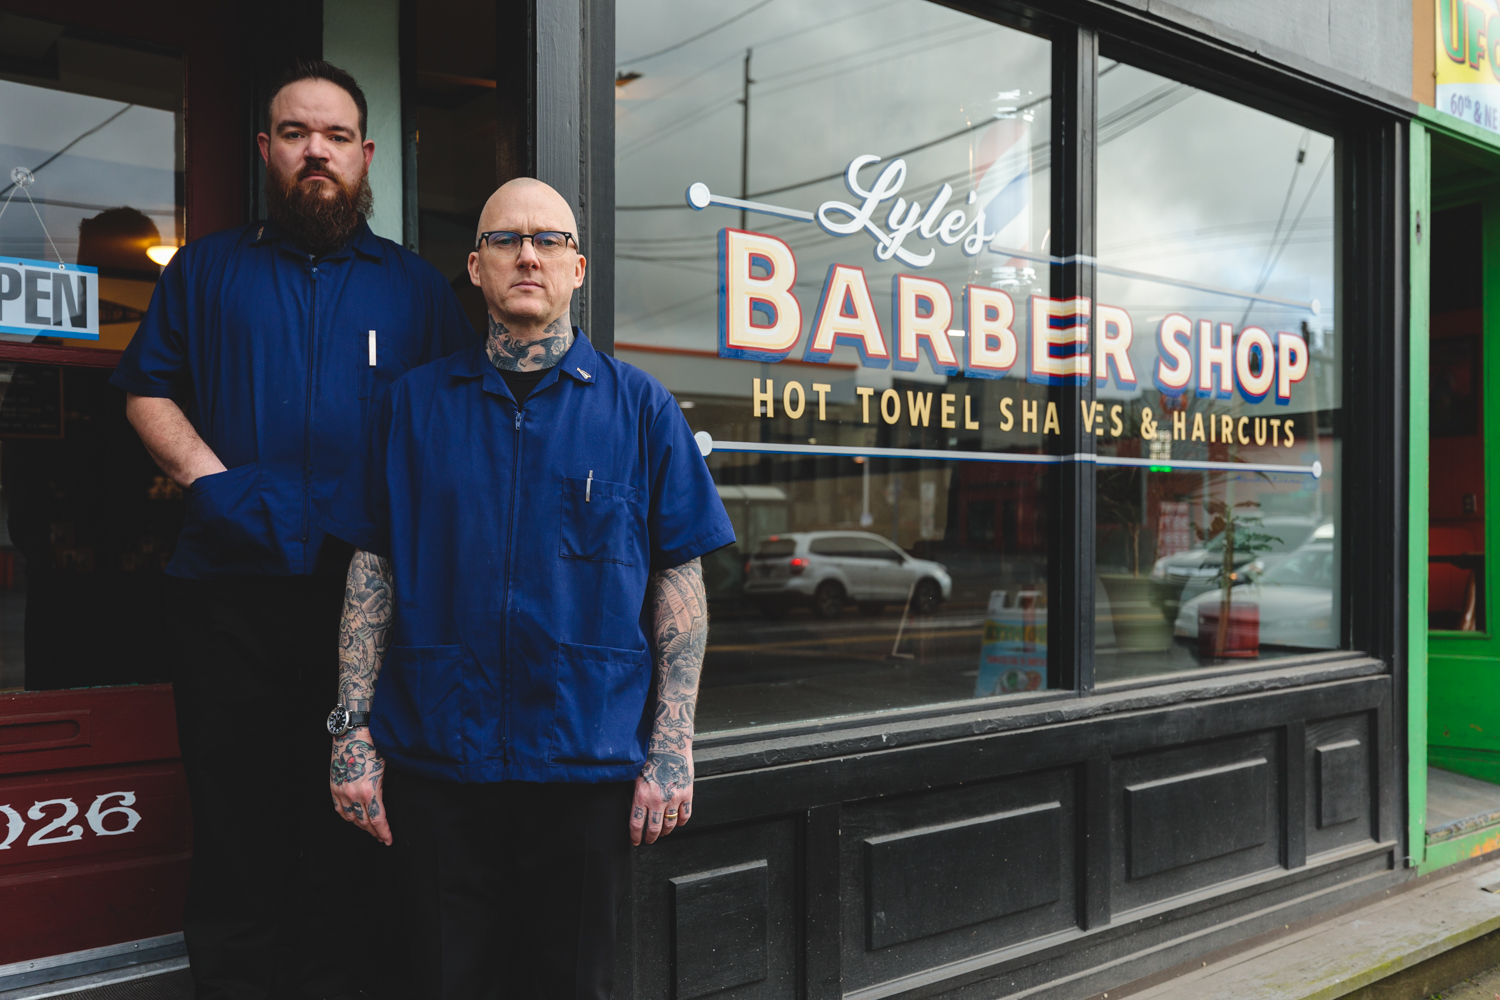 Brian Burt and Kris Perry standing outside Lyle's Barbershop.